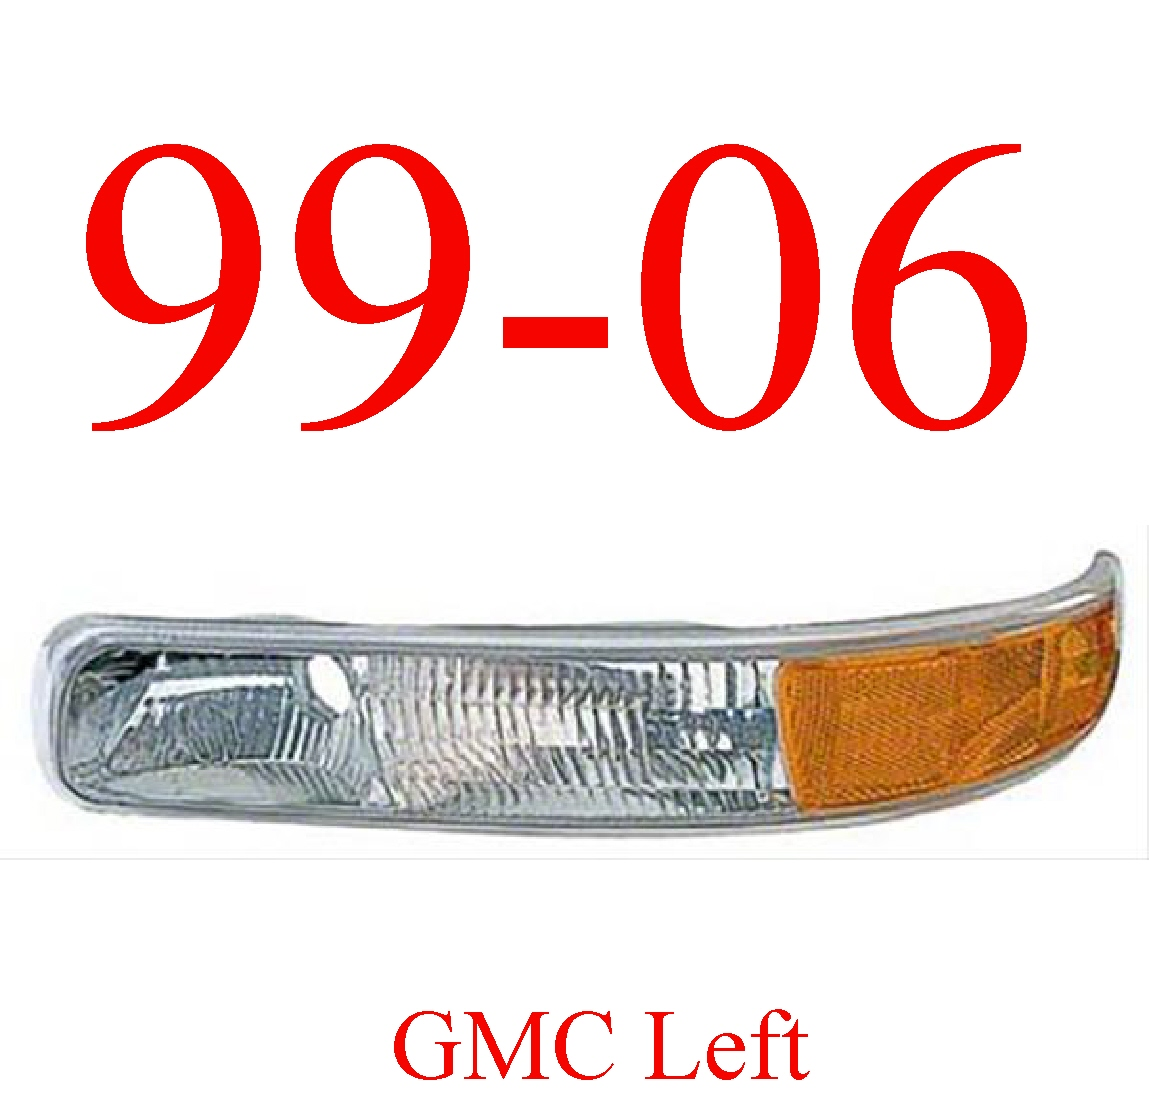 99-06 GMC Truck Left Park Light Assembly